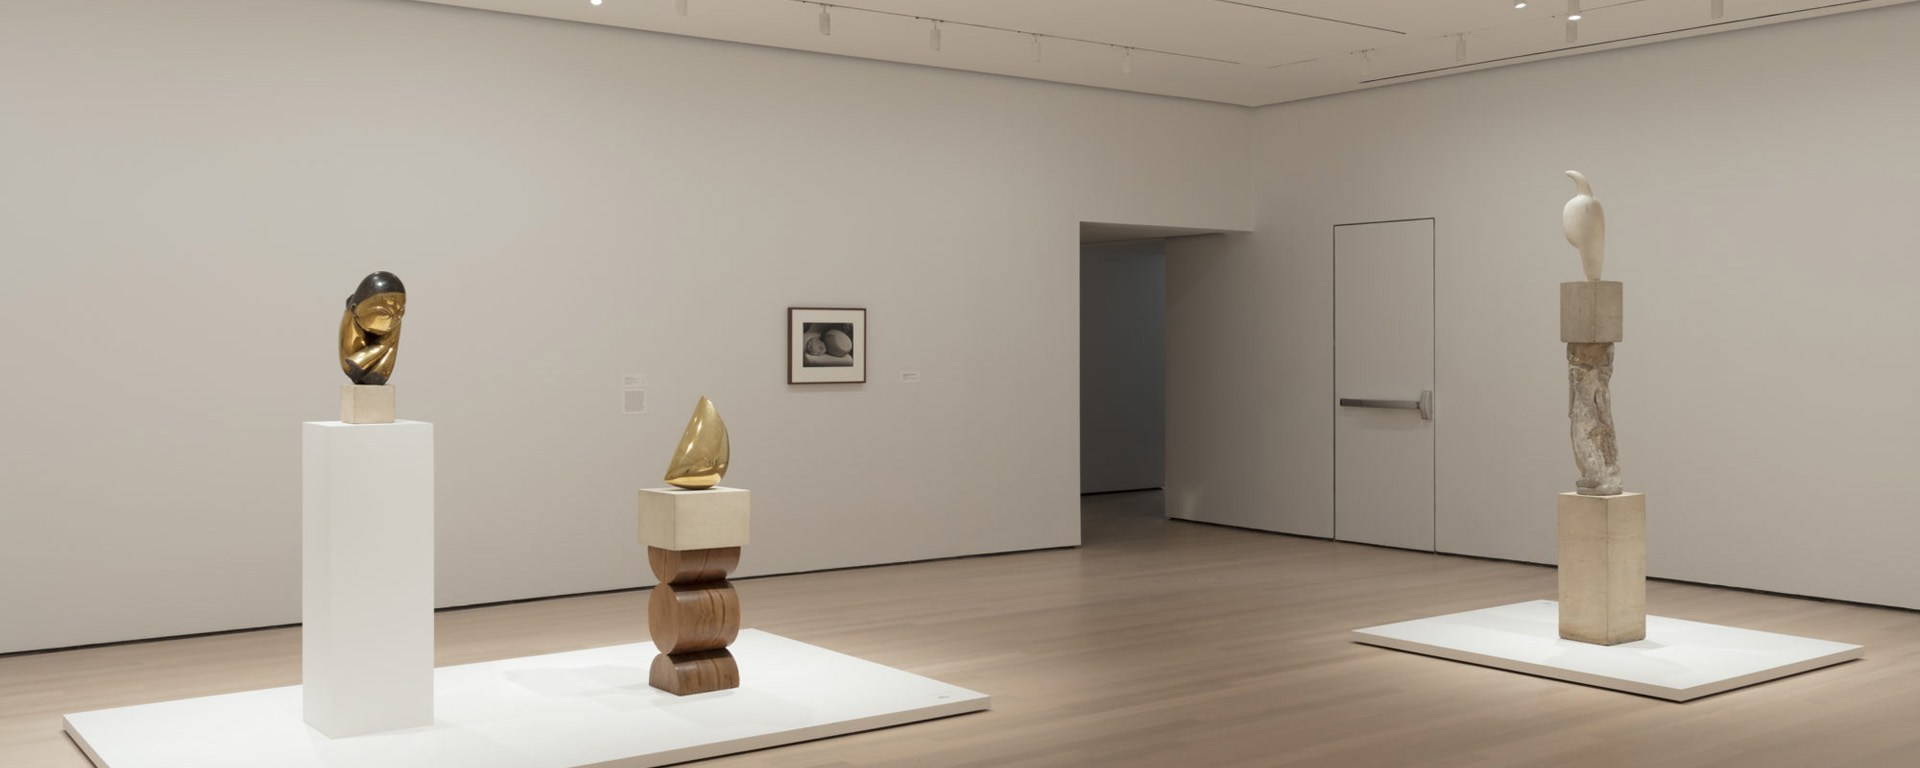 Installation view of Constantin Brancusi Sculpture, The Museum of Modern Art, New York, July 22, 2018–June 15, 2019. © 2018 The Museum of Modern Art. Photo: Denis Doorly